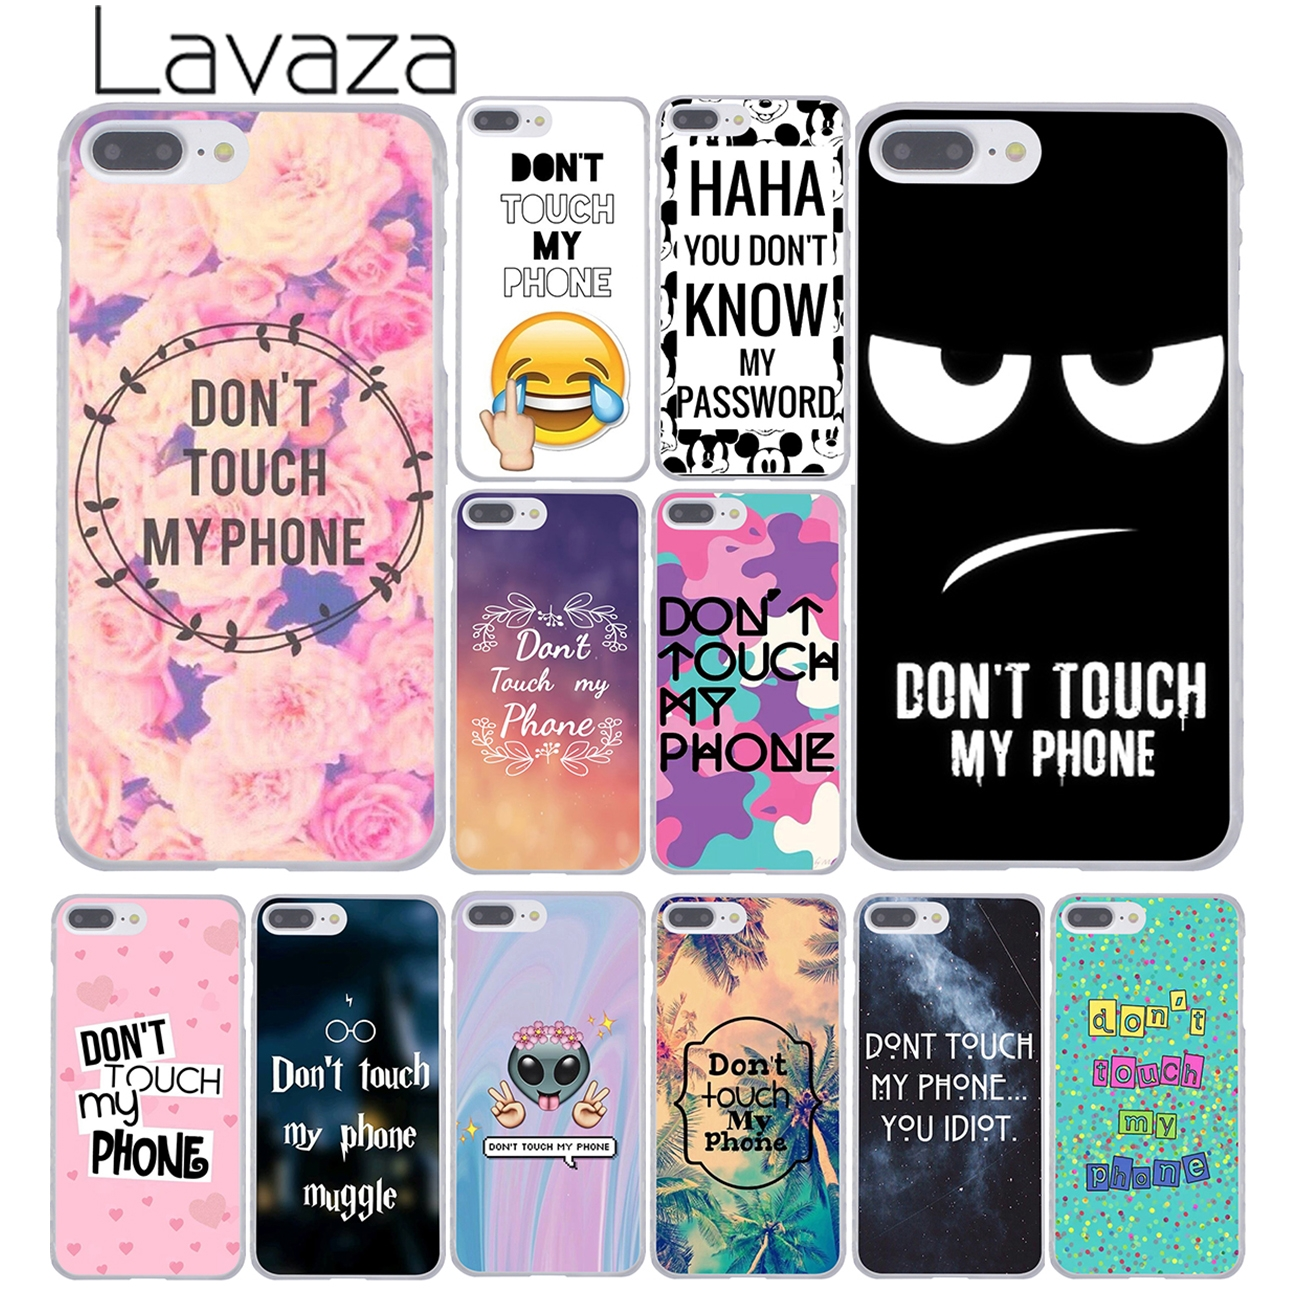 Lavaza do not touch Don t touch my phone muggle Phone Case for Apple iPhone  XR XS Max X 8 7 6 6S Plus 5 5S SE 5C 4S 10 Cover d46d7d280afb2